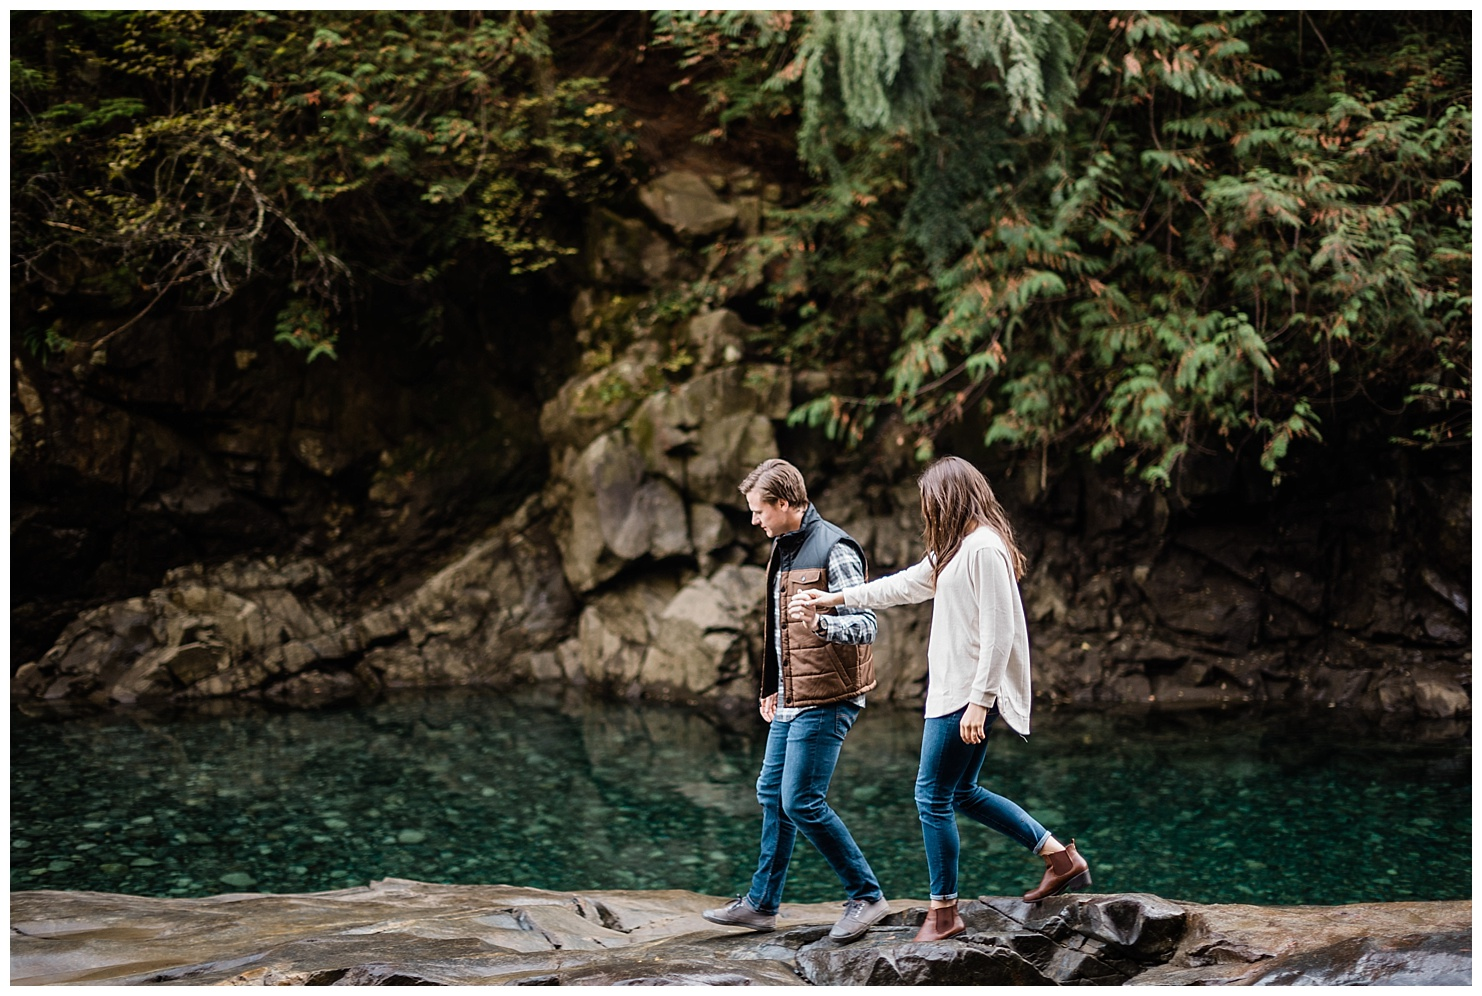 PNW Engagement Photo at Golden Ears Provincial Park, British Columbia by Forthright Photo